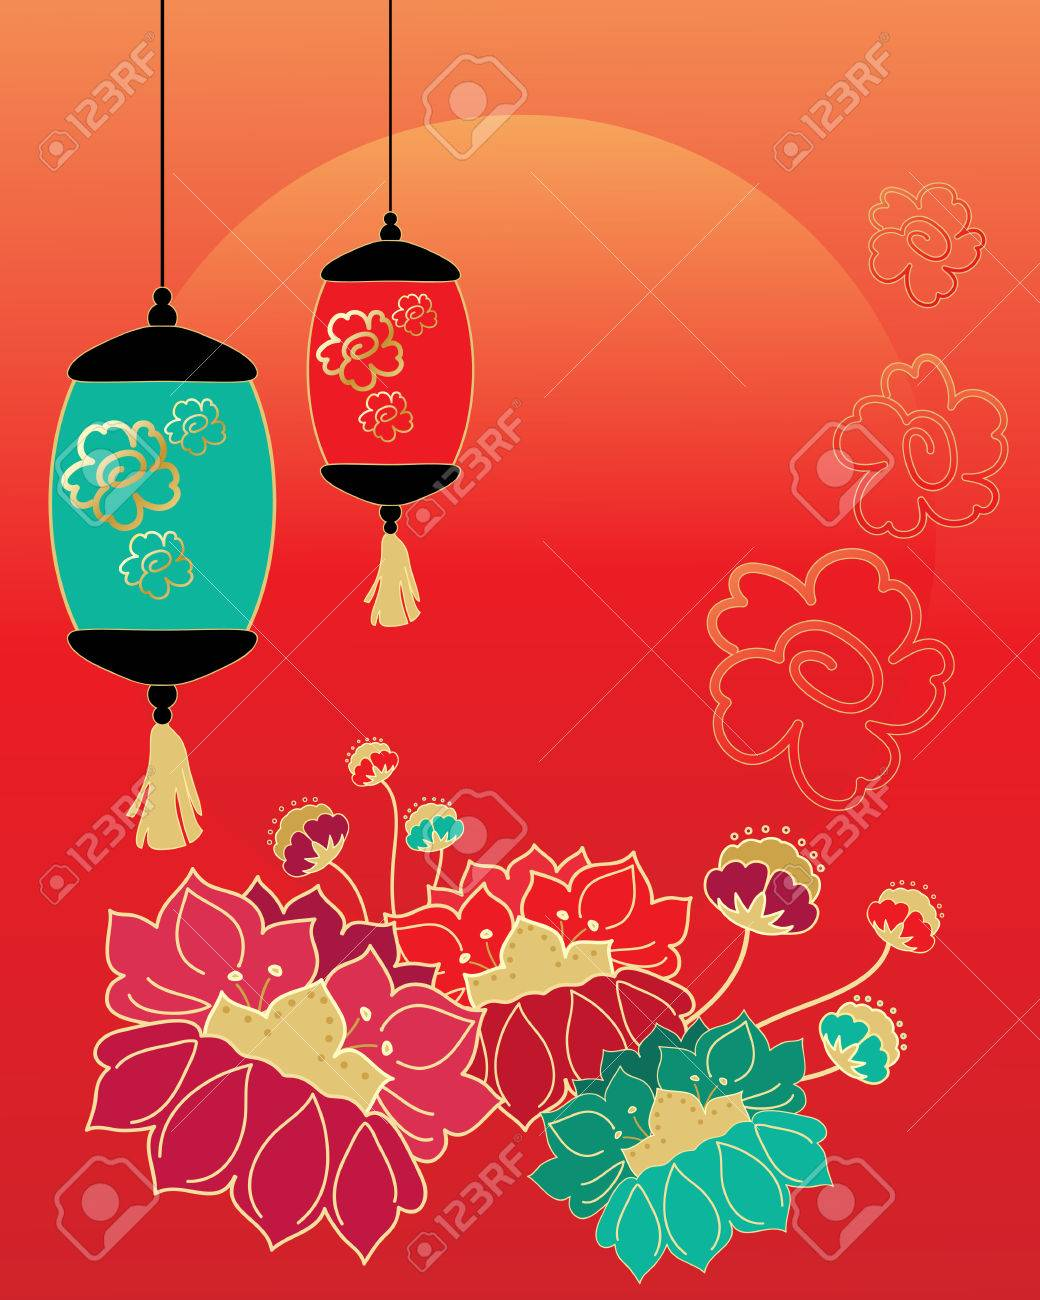 an illustration of a chinese new year celebration greeting card design with stylized flowers lanterns and